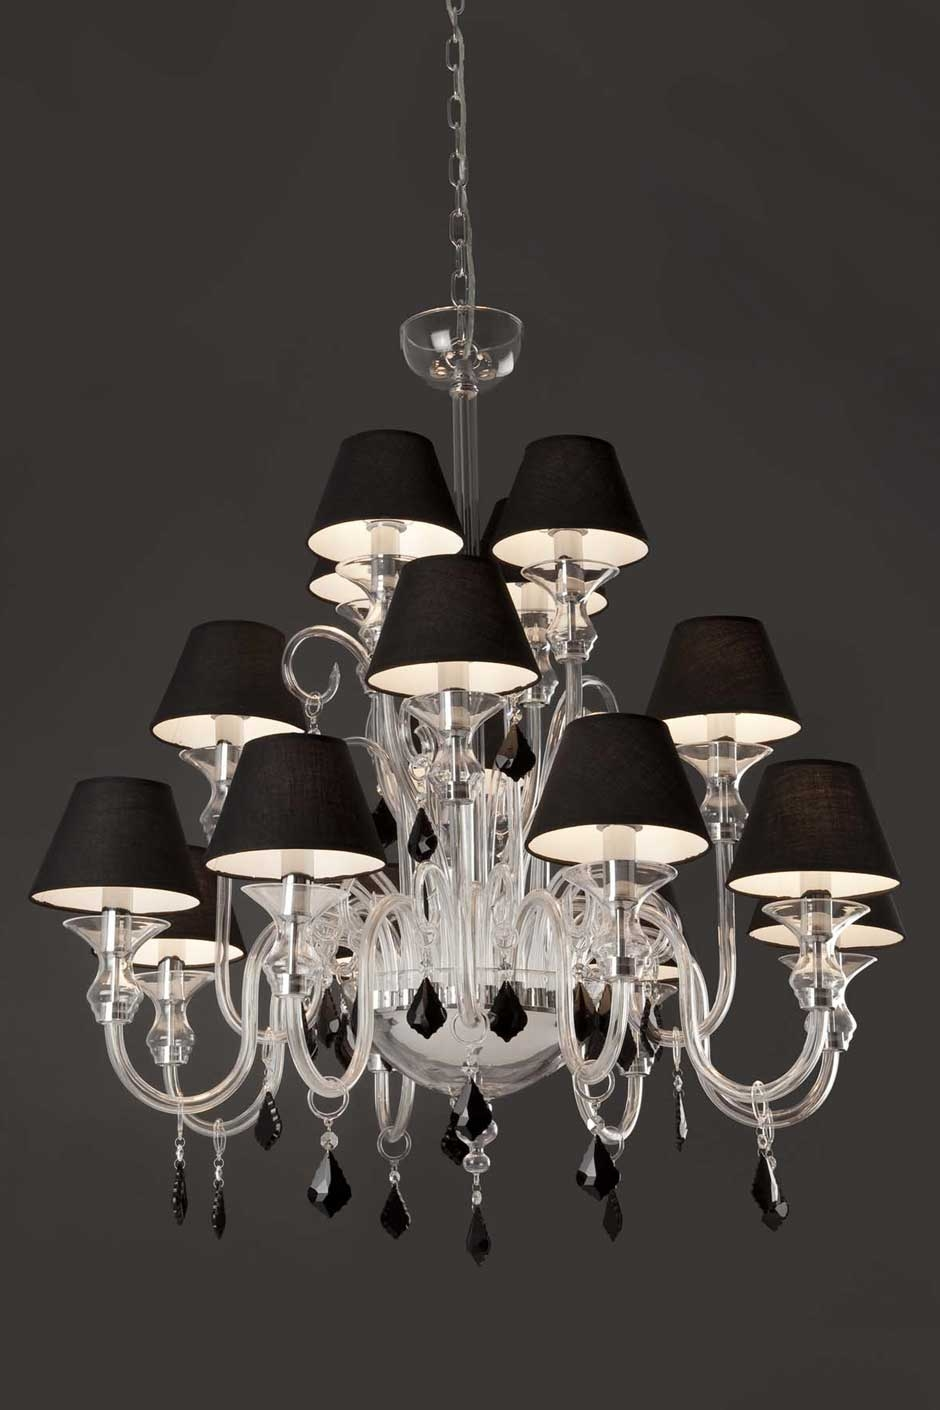 Murano 16 Light Chandelier With Black Shades And Black Crystal Pertaining To Chandeliers With Black Shades (Image 18 of 25)